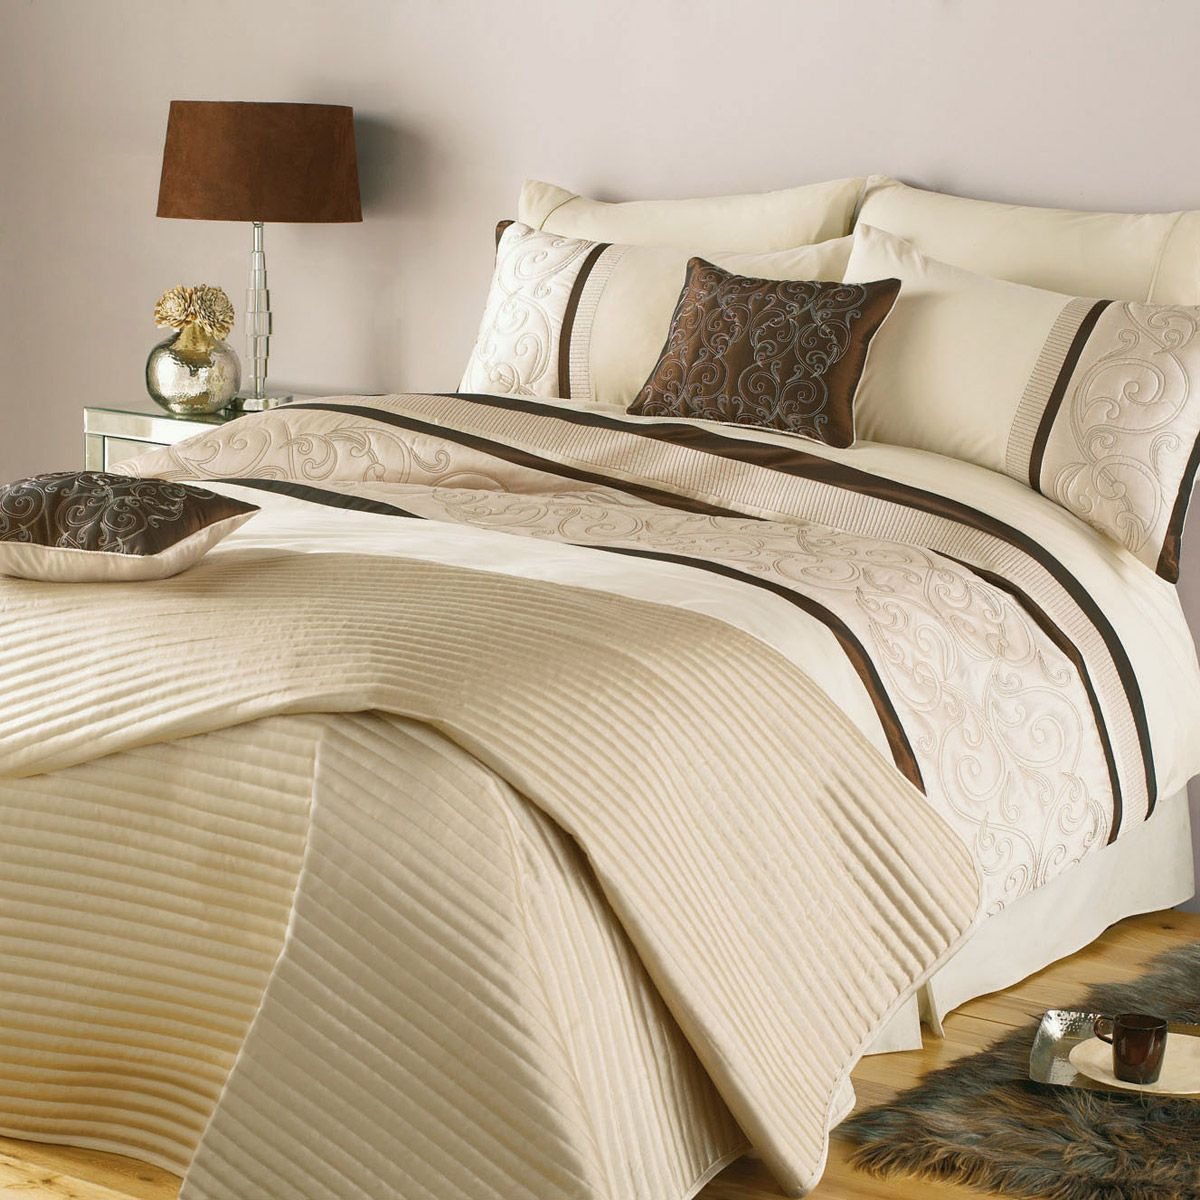 Using King Size Linens Extraordinary Super King Size Linens Puts Uk 63 For Yours King Size Quilt Covers Bed Spreads King Size Duvet Sets